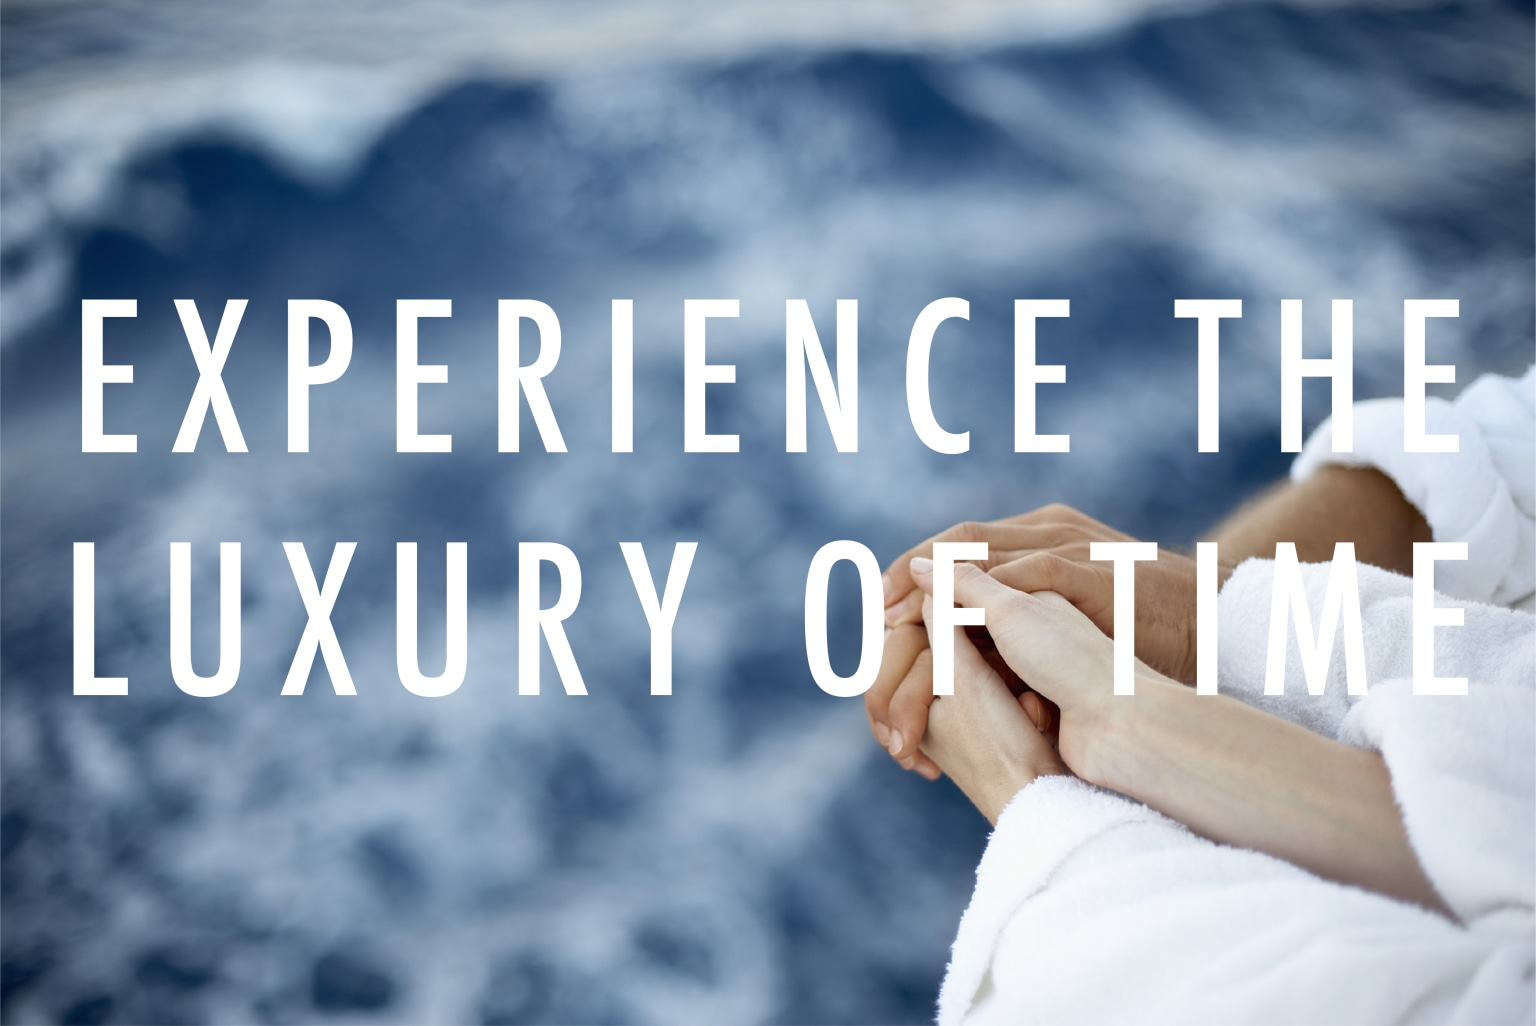 Experience the Luxury of Time